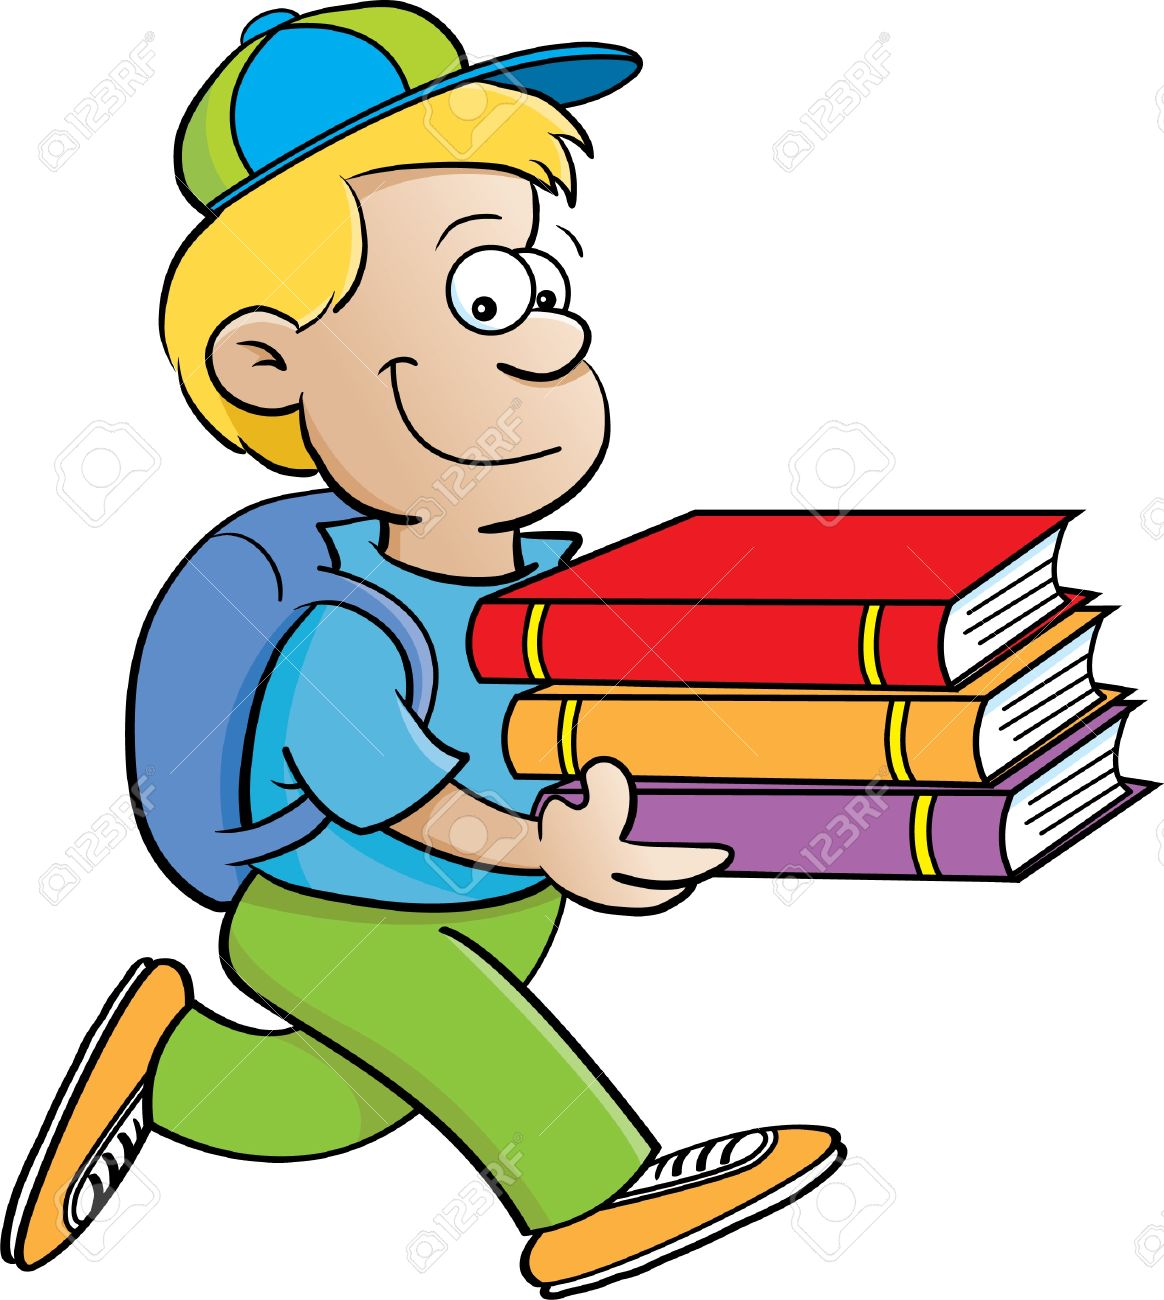 1164x1300 Cartoon Illustration Of A Boy Carrying Books On A White Background